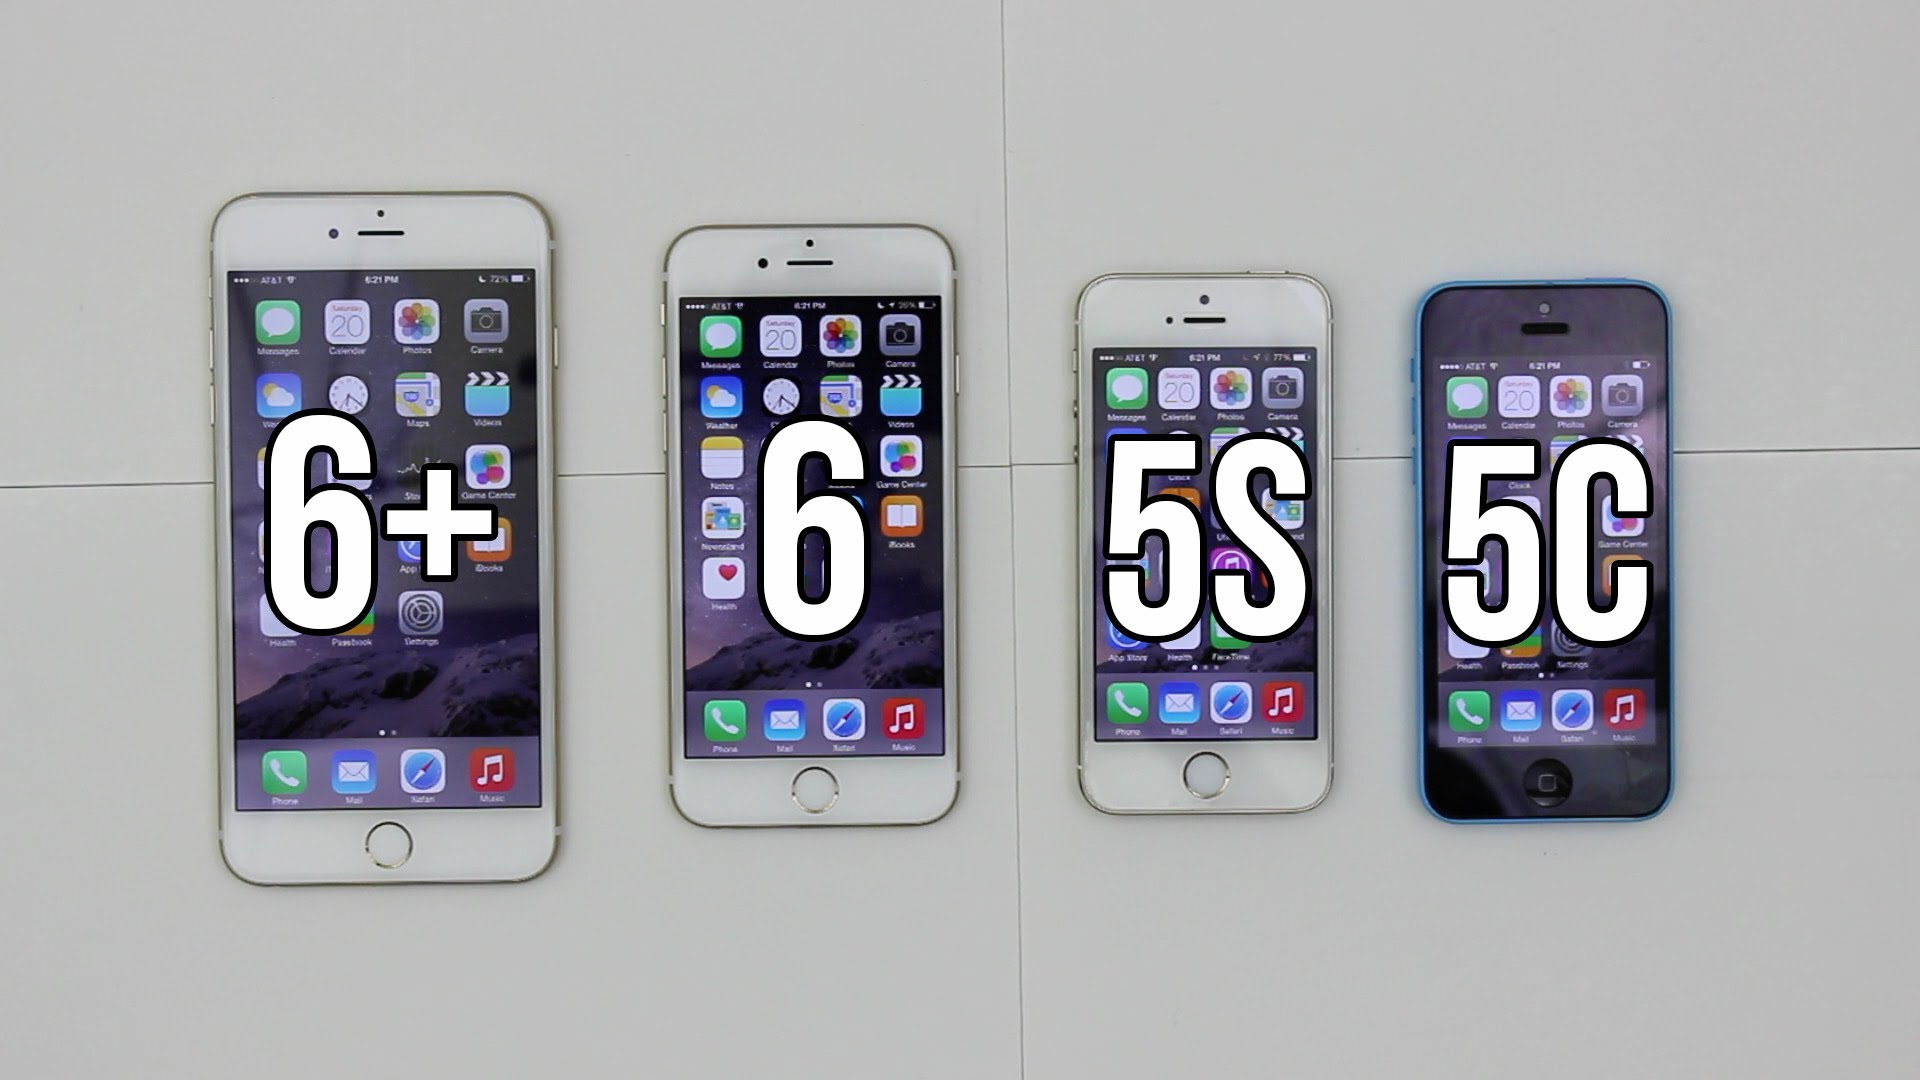 iphone 5s and iphone 6 comparison